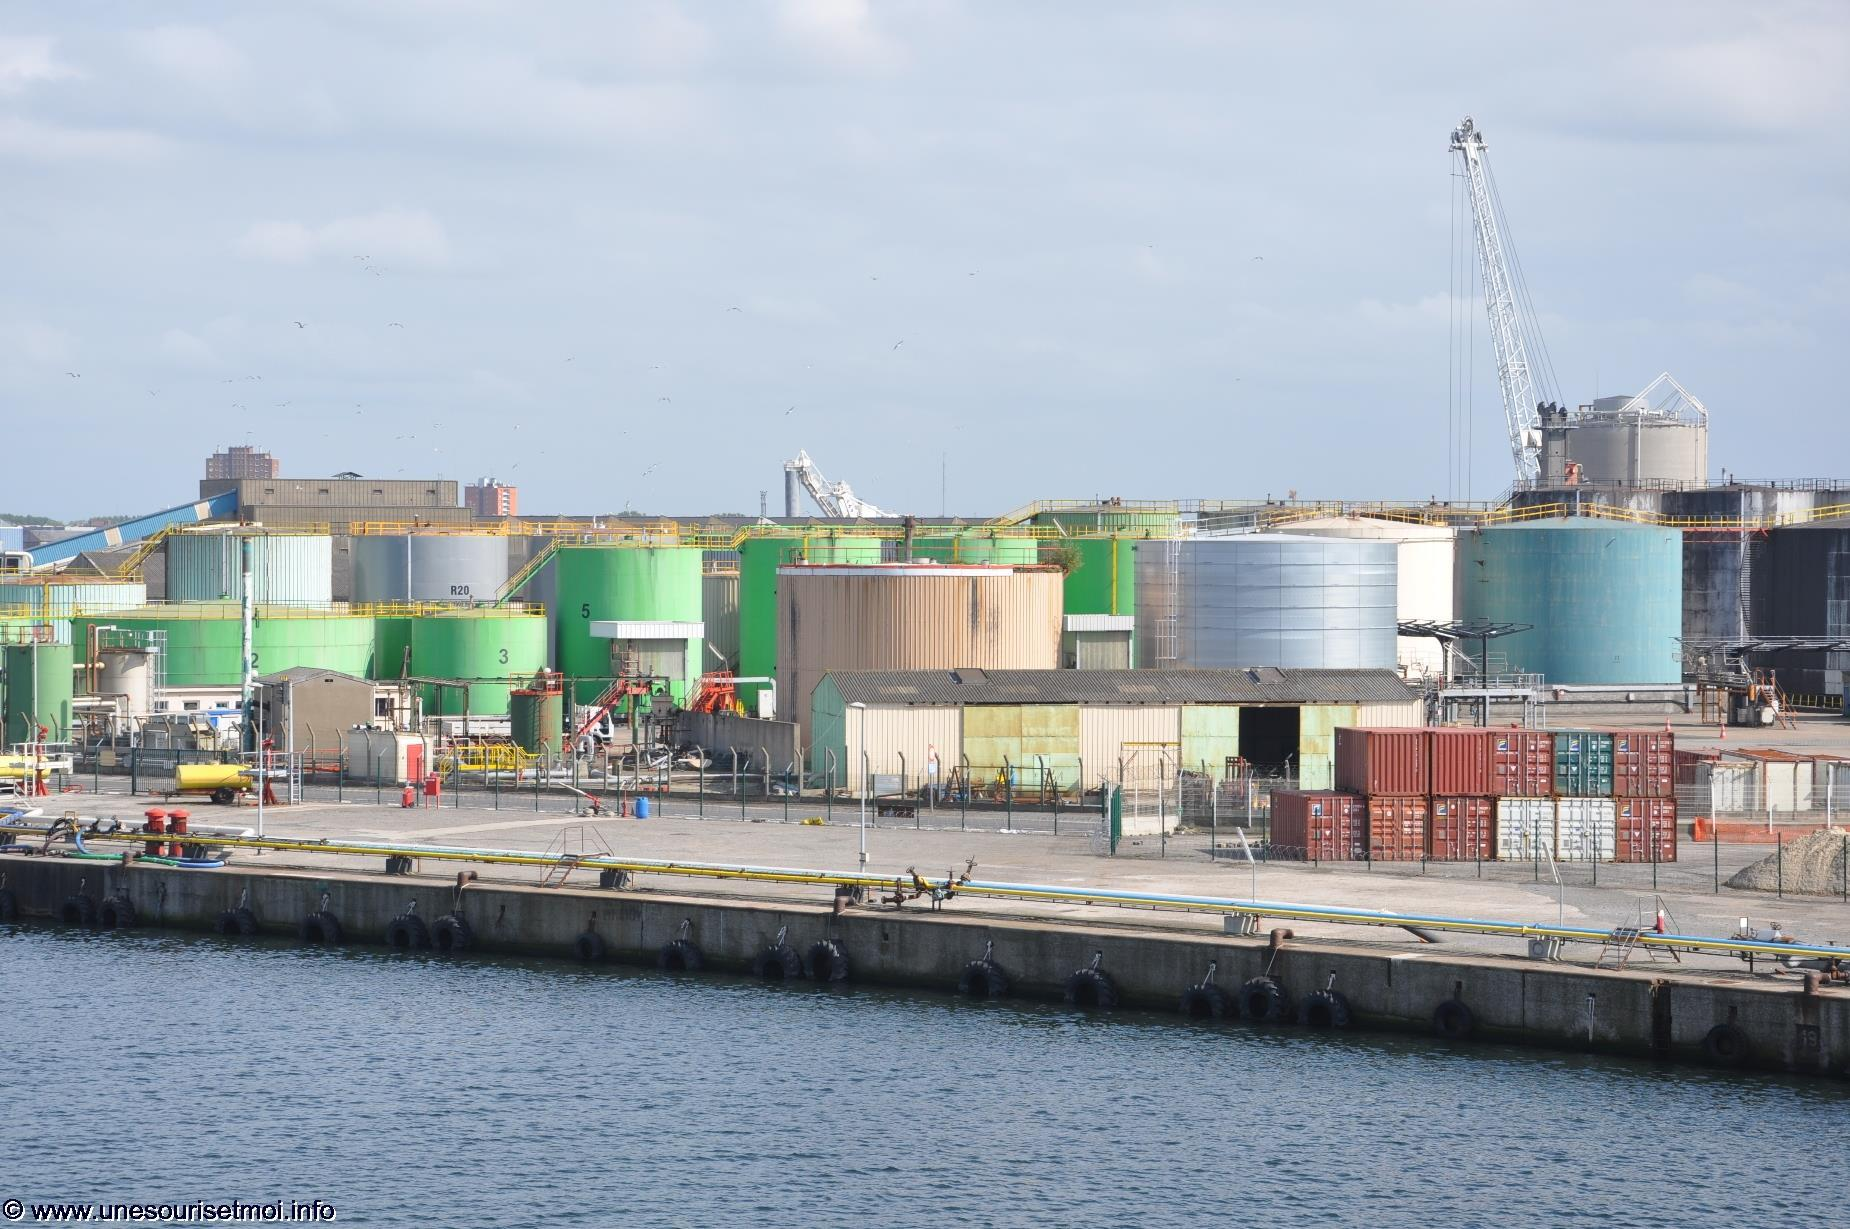 dunkerque-le-port-indutriel-la-pollution-photos-sensibilisation-1